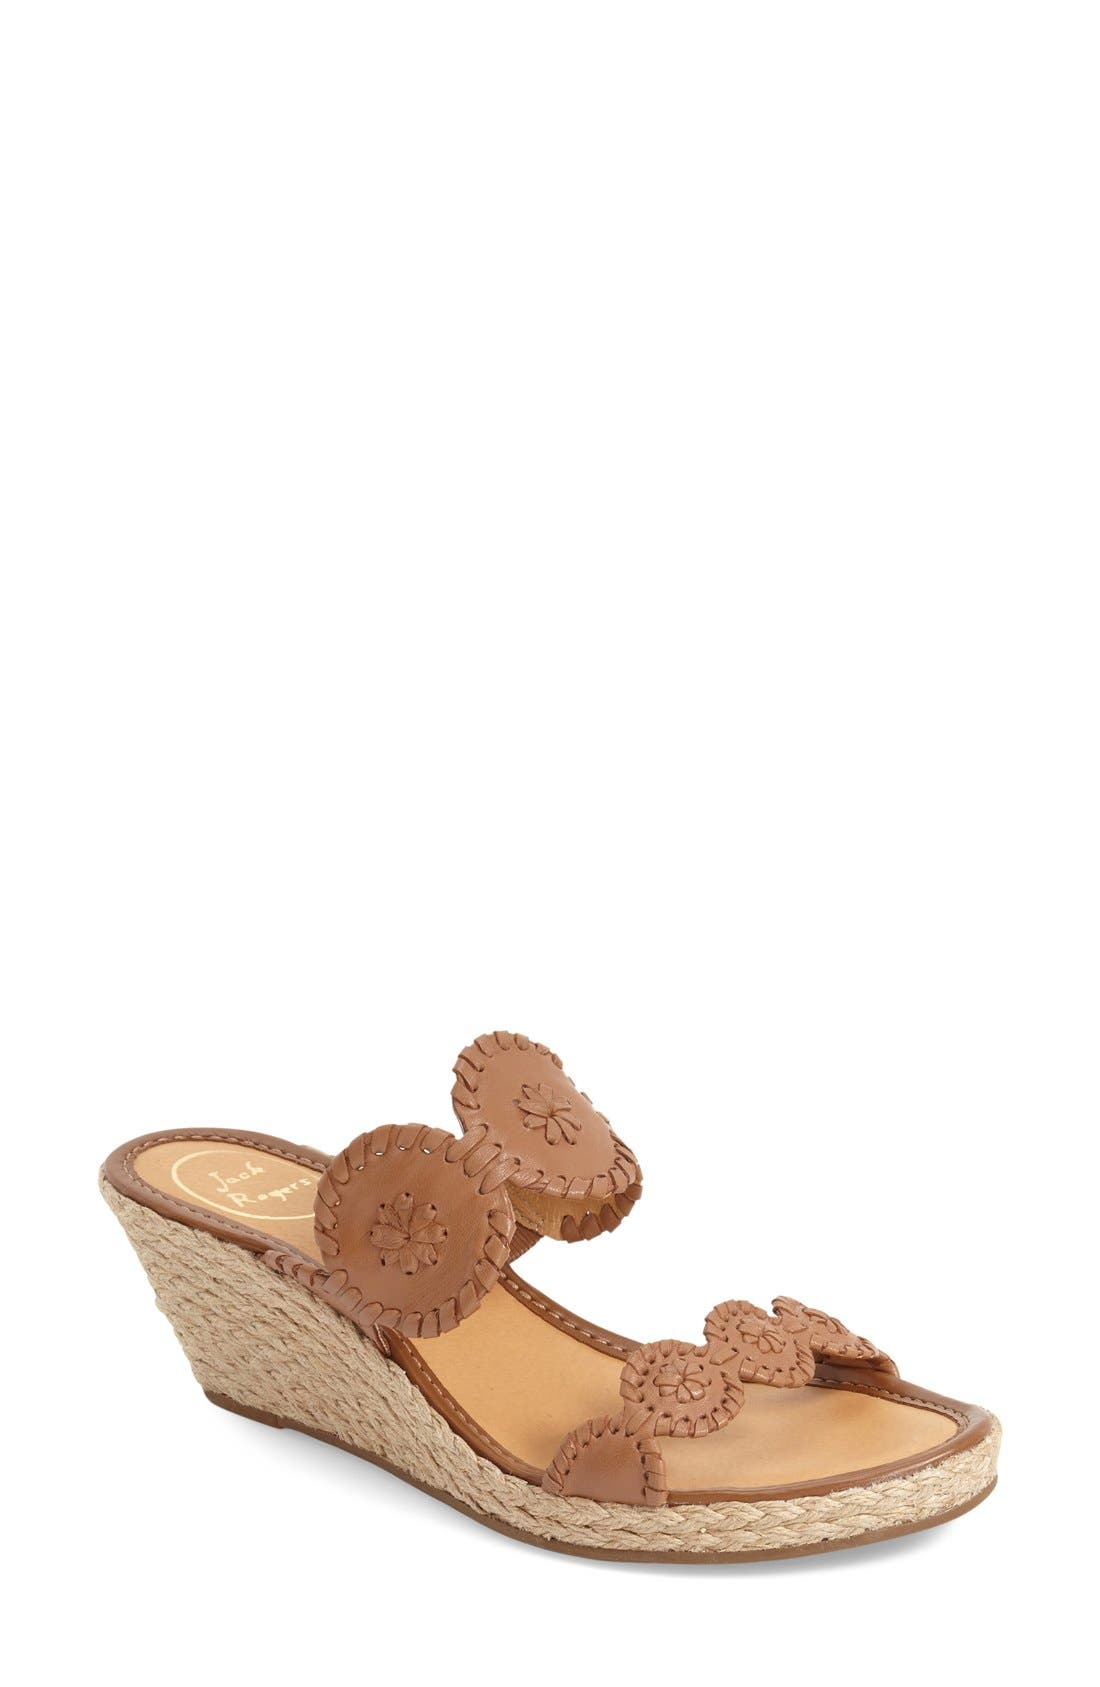 JACK ROGERS Shelby Whipstitched Wedge Sandal